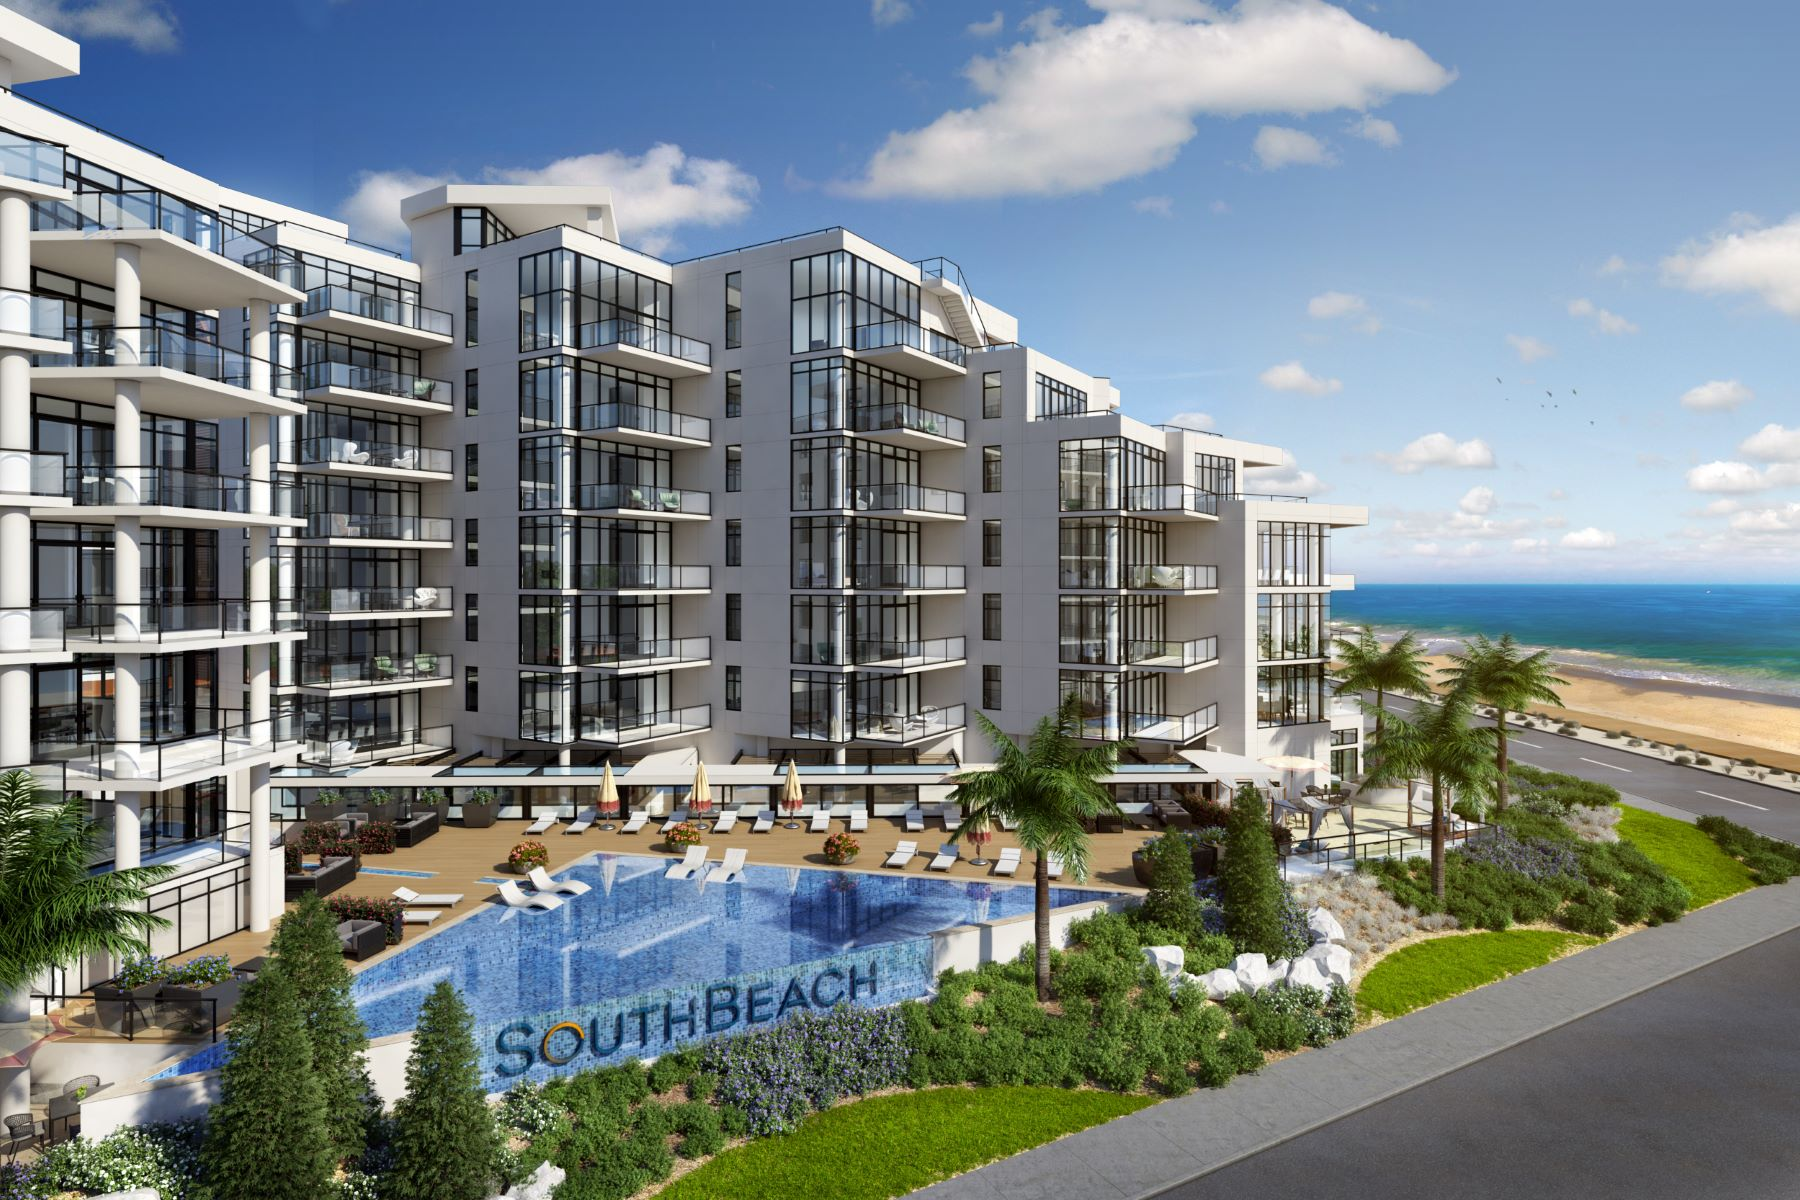 Condominiums por un Venta en South Beach at Long Branch 350 Ocean Avenue 801, Long Branch, Nueva Jersey 07740 Estados Unidos